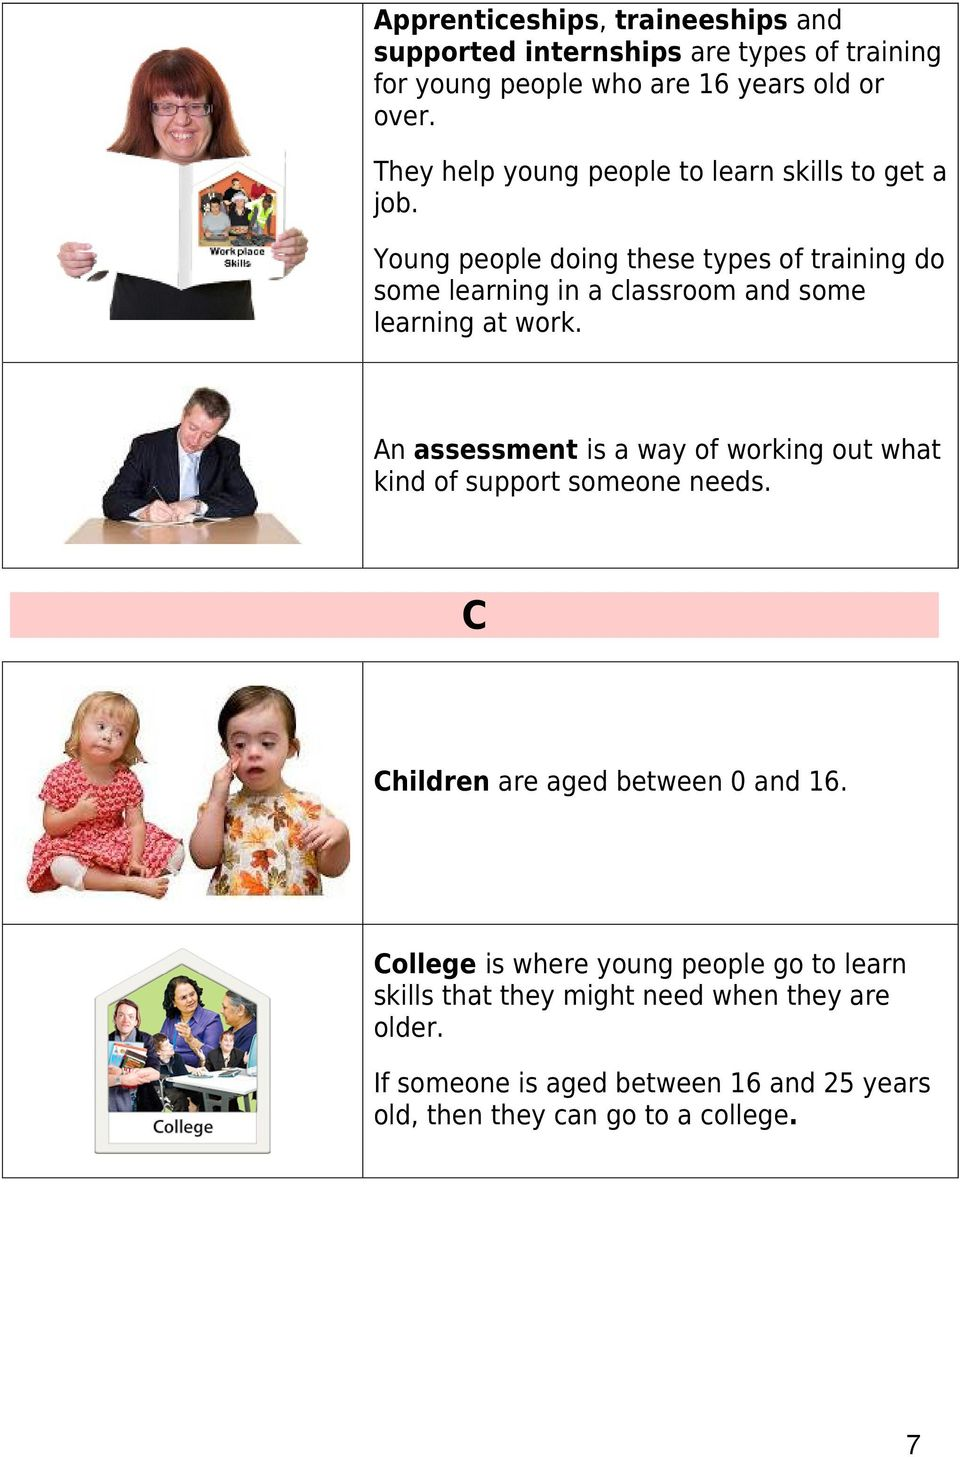 Young people doing these types of training do some learning in a classroom and some learning at work.